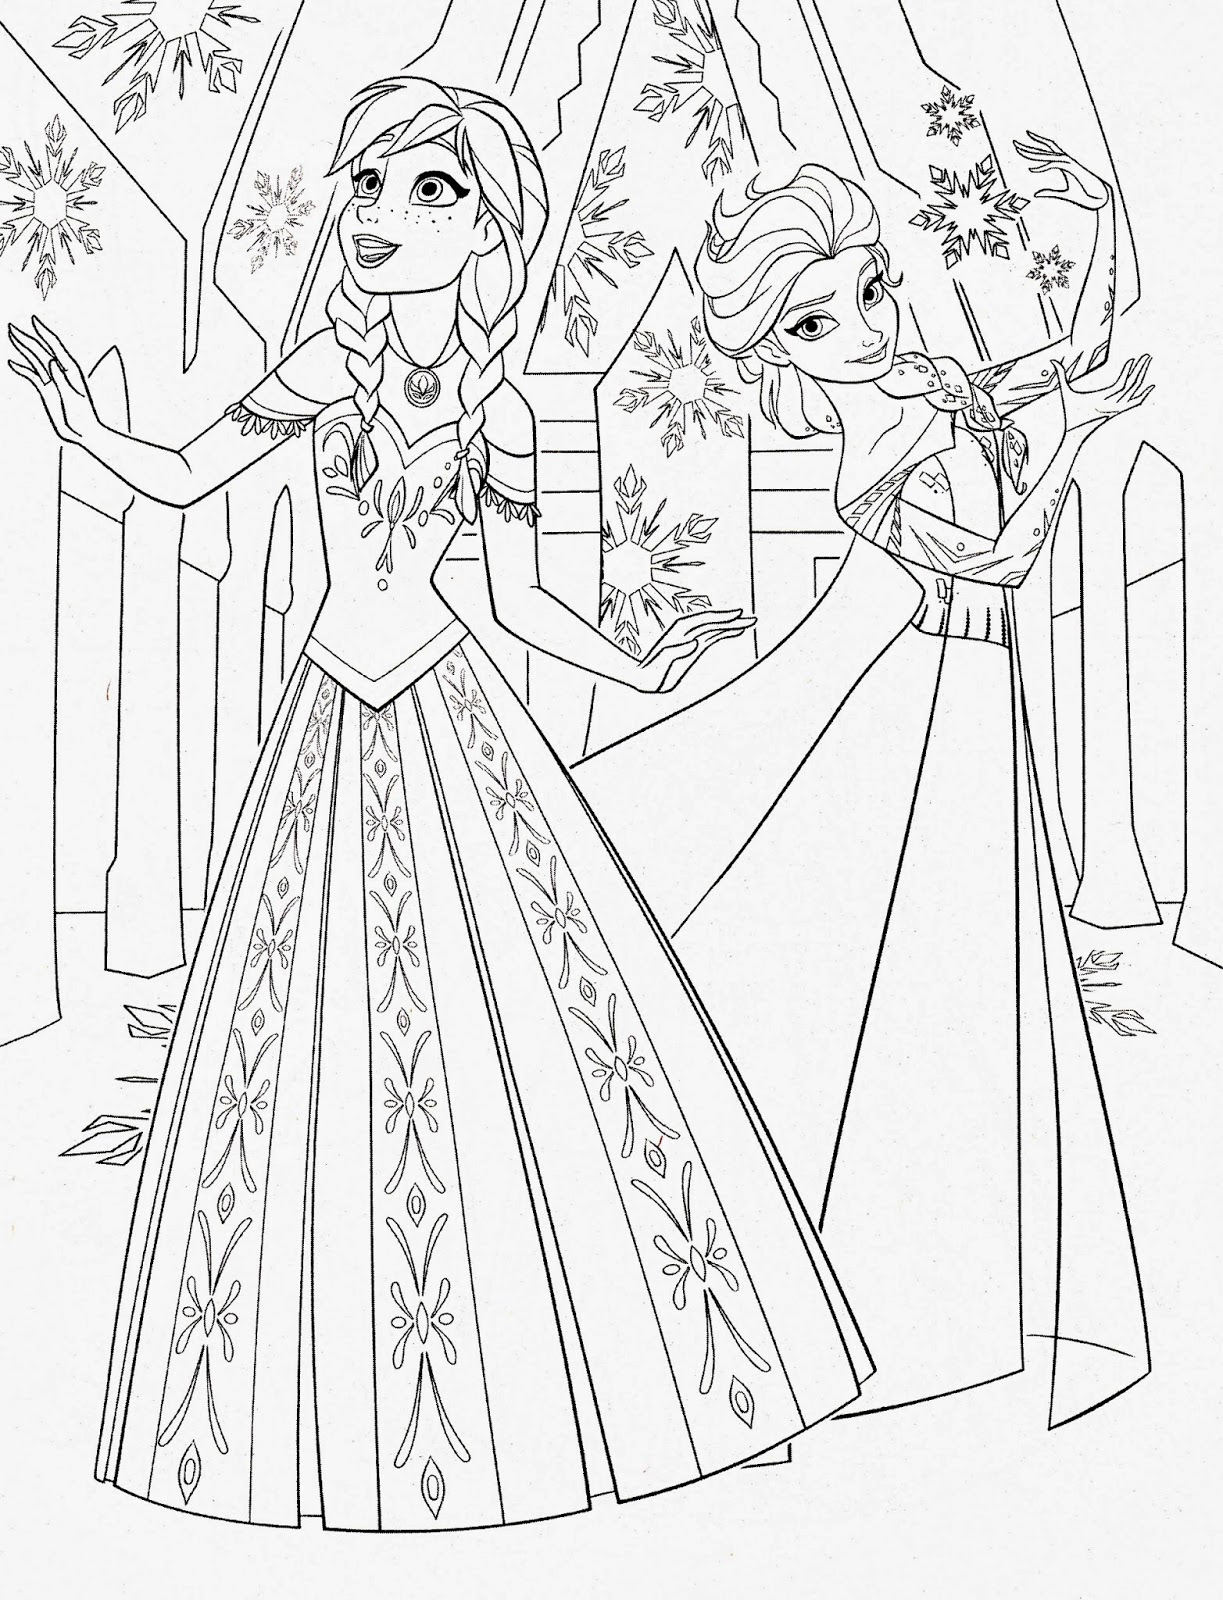 Frozen Coloring Pages Color Pages Free Coloring Pages For Kids